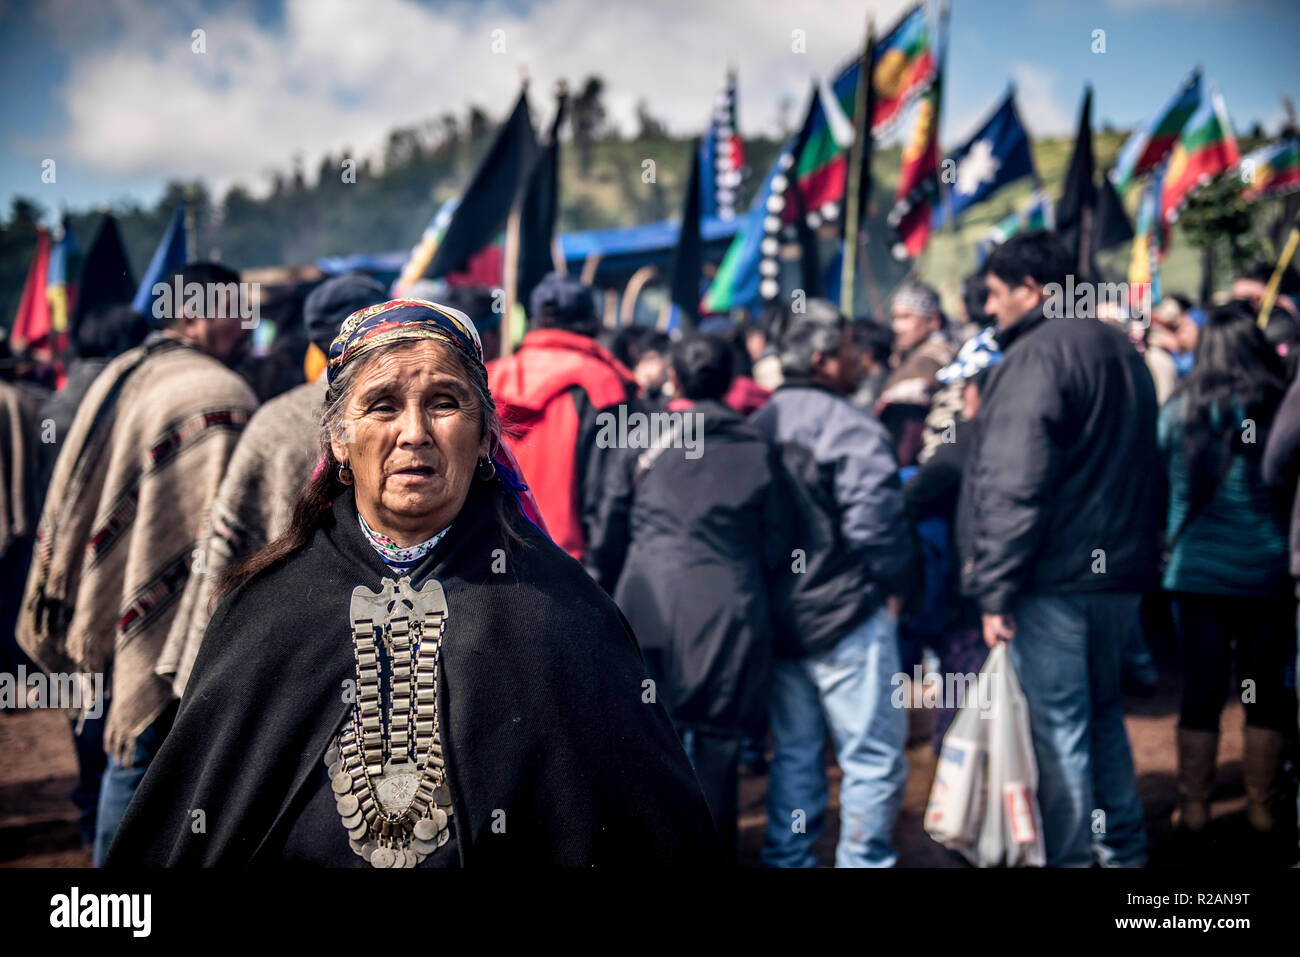 17 November 2018, Chile, Temucuicui: People from the indigenous Mapuche people take part in the funeral of 24-year-old Camilo Catrillanca in a cemetery. A special unit of the Chilean military police (Carabineros) had shot Catrillanca on 14.11.2018 in the indigenous Mapuche community Temucuicui. According to police, the officers tracked three car thieves who had stolen their teachers' vehicles. The persecution led them into the territory of the Mapuche community of Temucuicui. Following Catrillanca's death, Mapuche organisations have called for protests across the country. Photo: Ana Karina Del - Stock Image